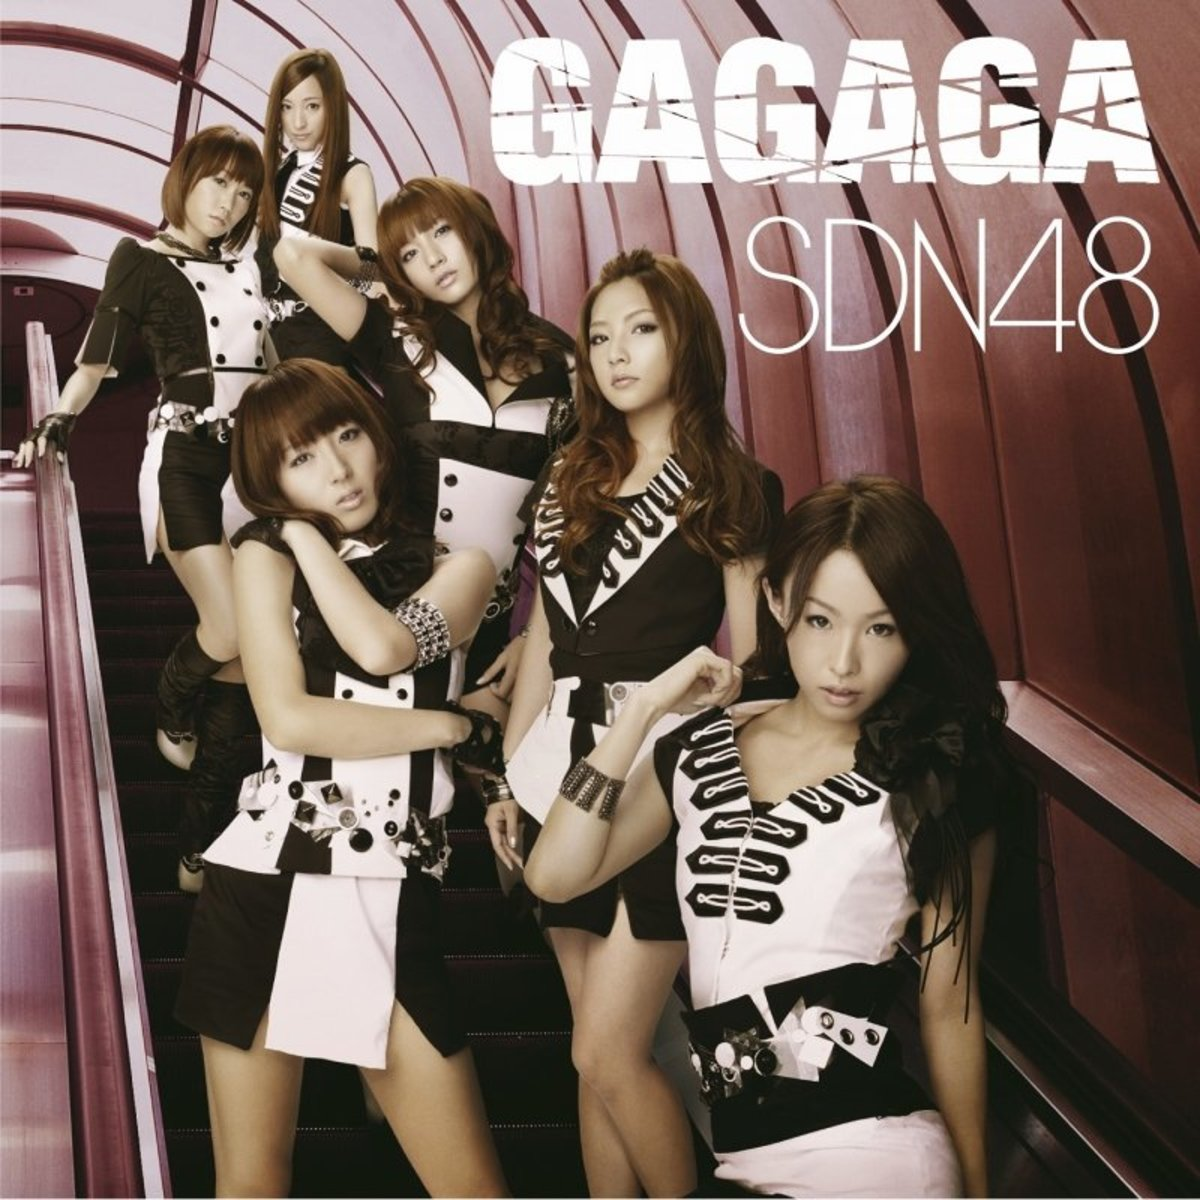 Members of SDN48 during the promotion of their single called GAGAGA. Megumi Ohori is pictured on the very far right.